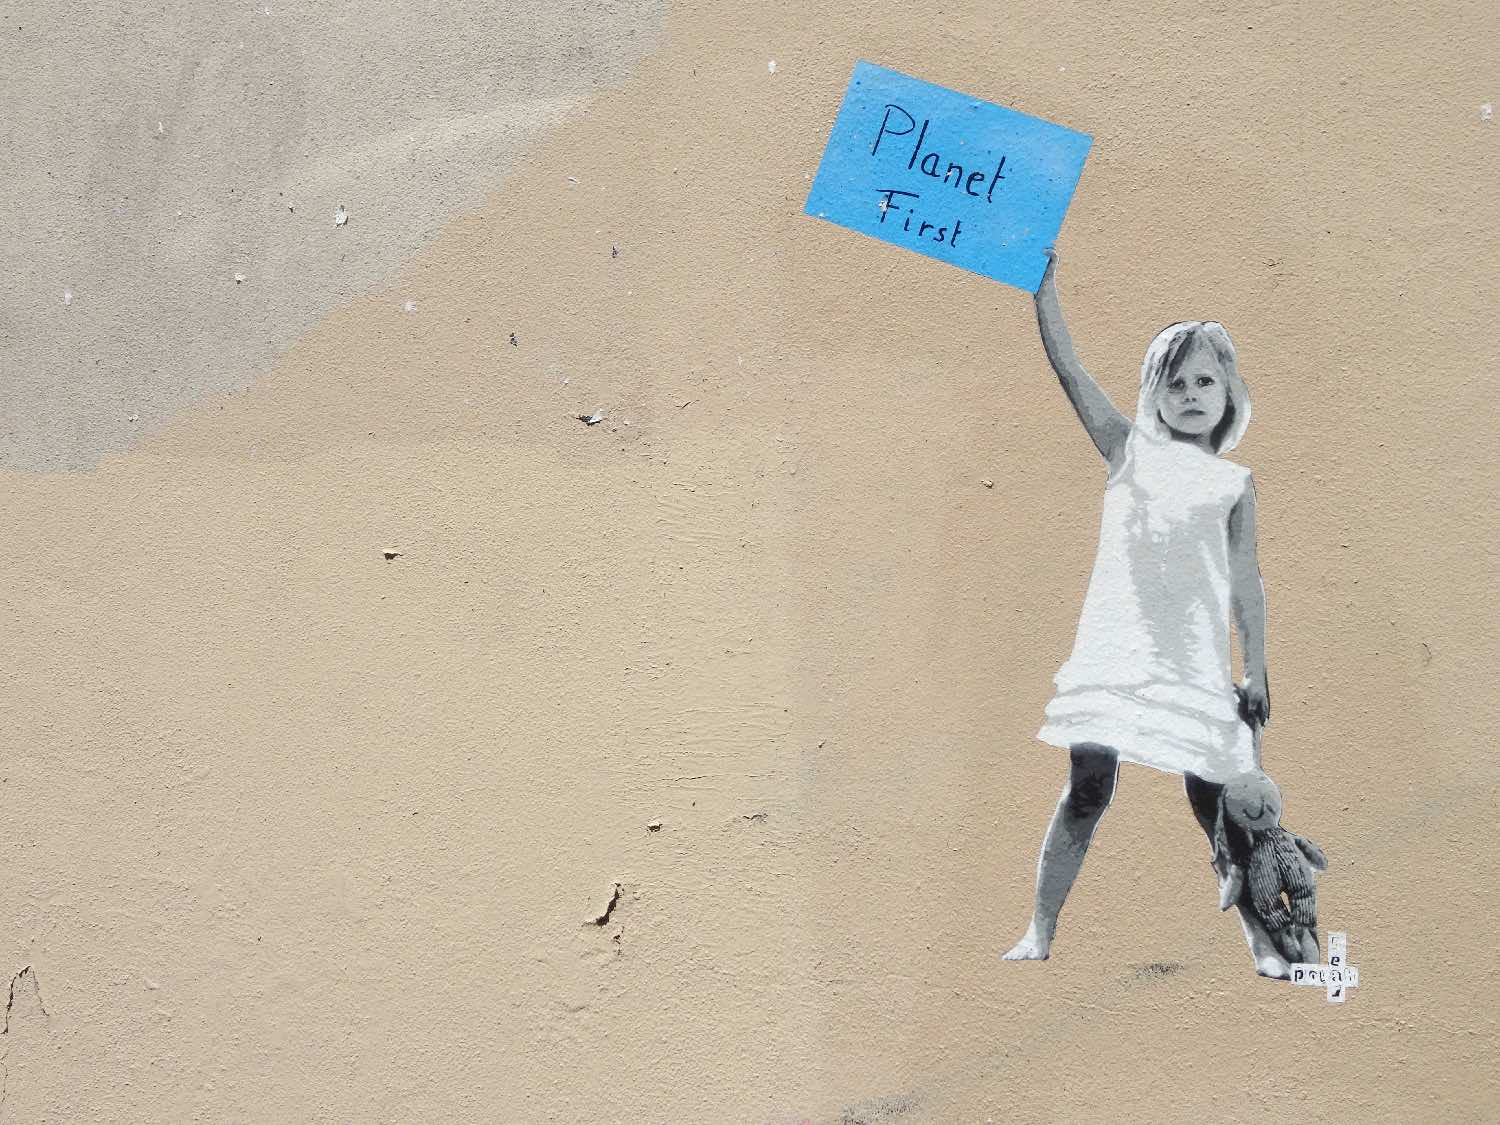 Planet first | ecologie | climat | street art | street art Paris | photo sandrine cohen